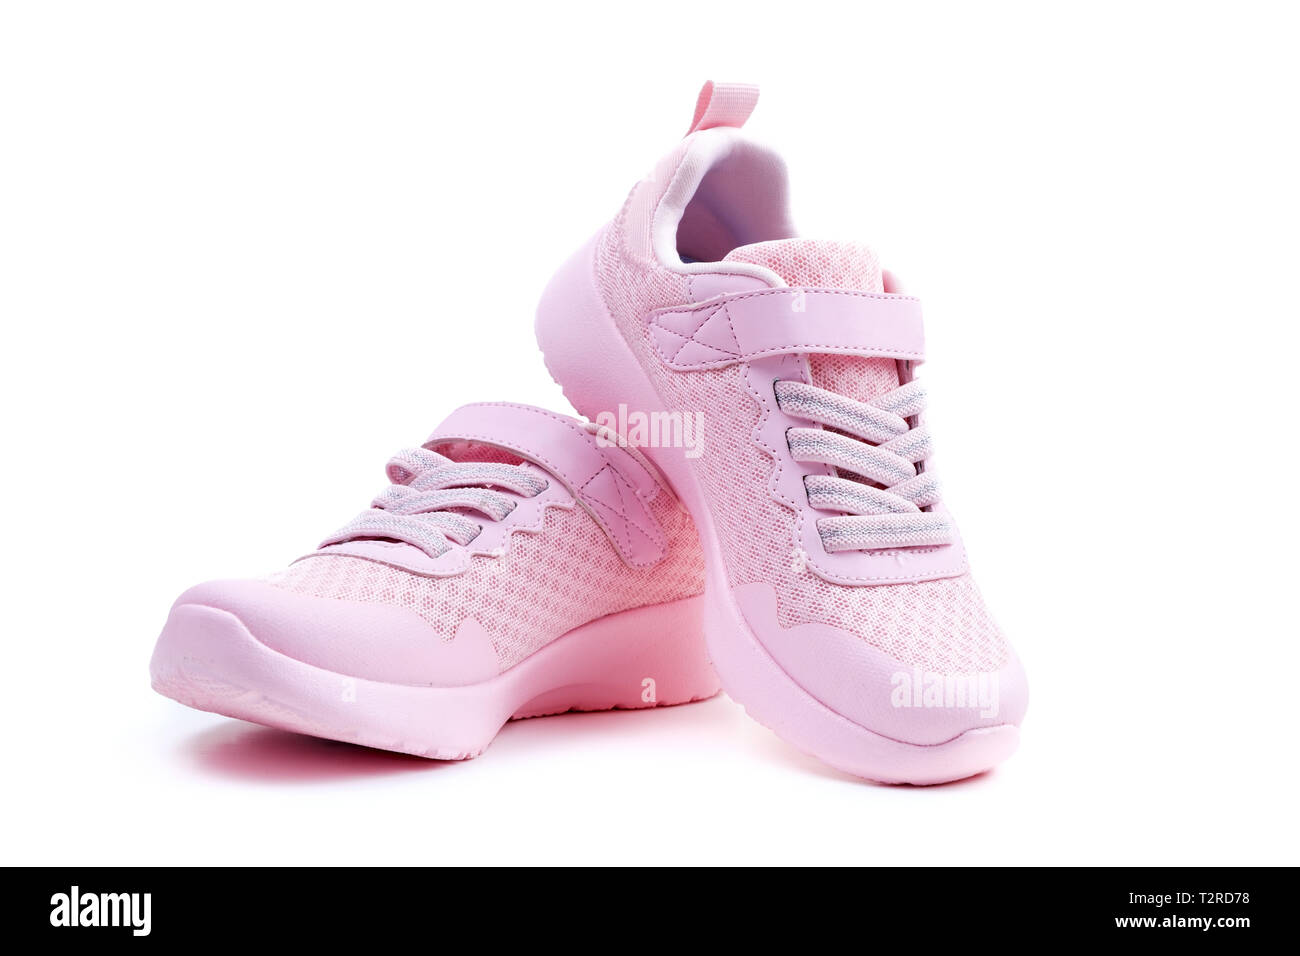 Pair of unbranded pink color sport or running shoes on a white background Stock Photo